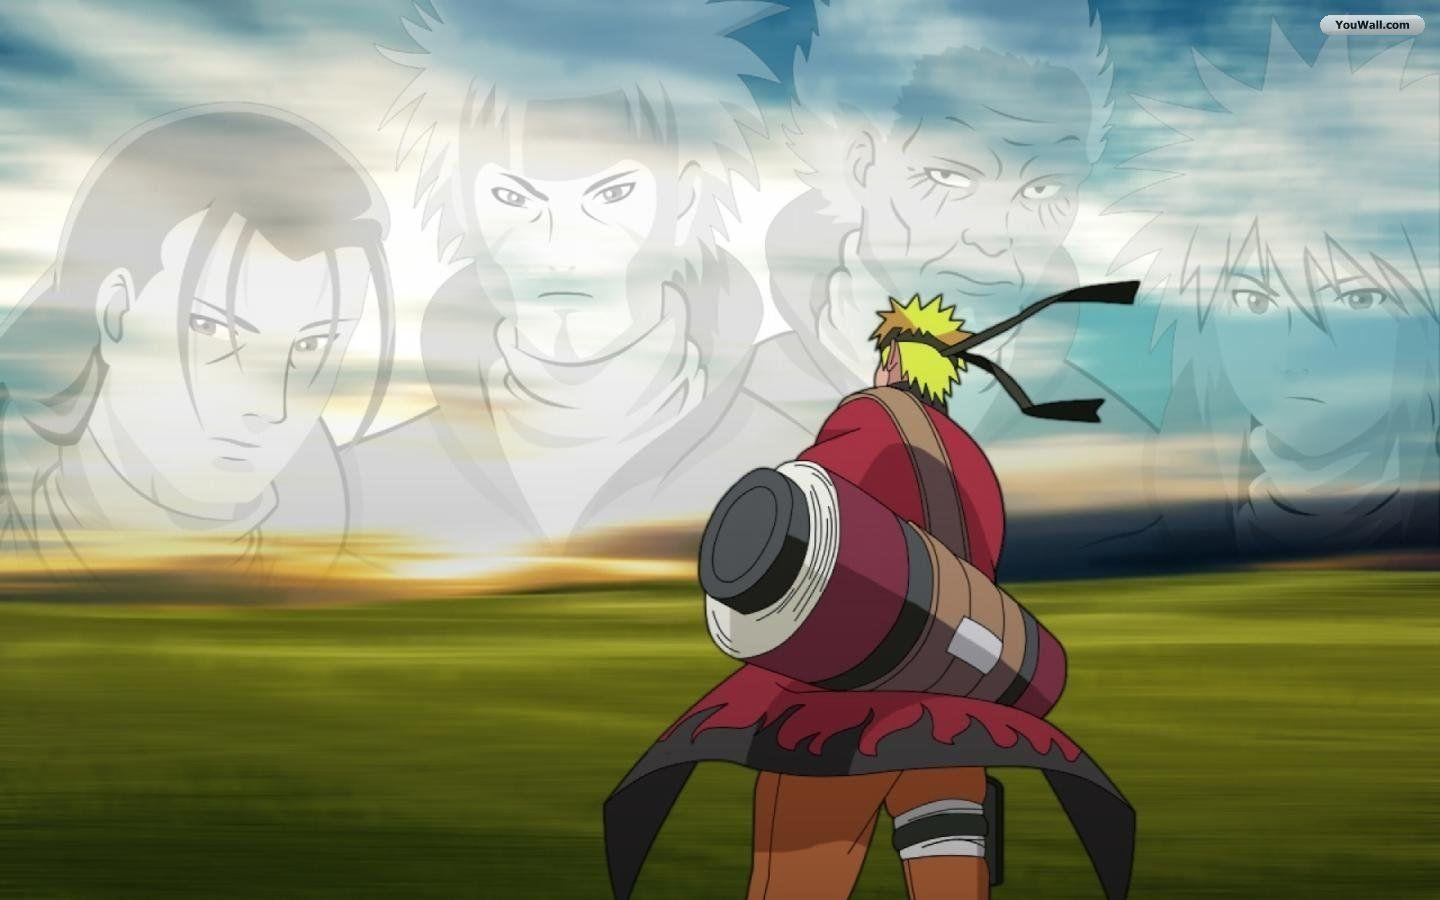 Hokage Naruto Wallpapers - Wallpaper Cave